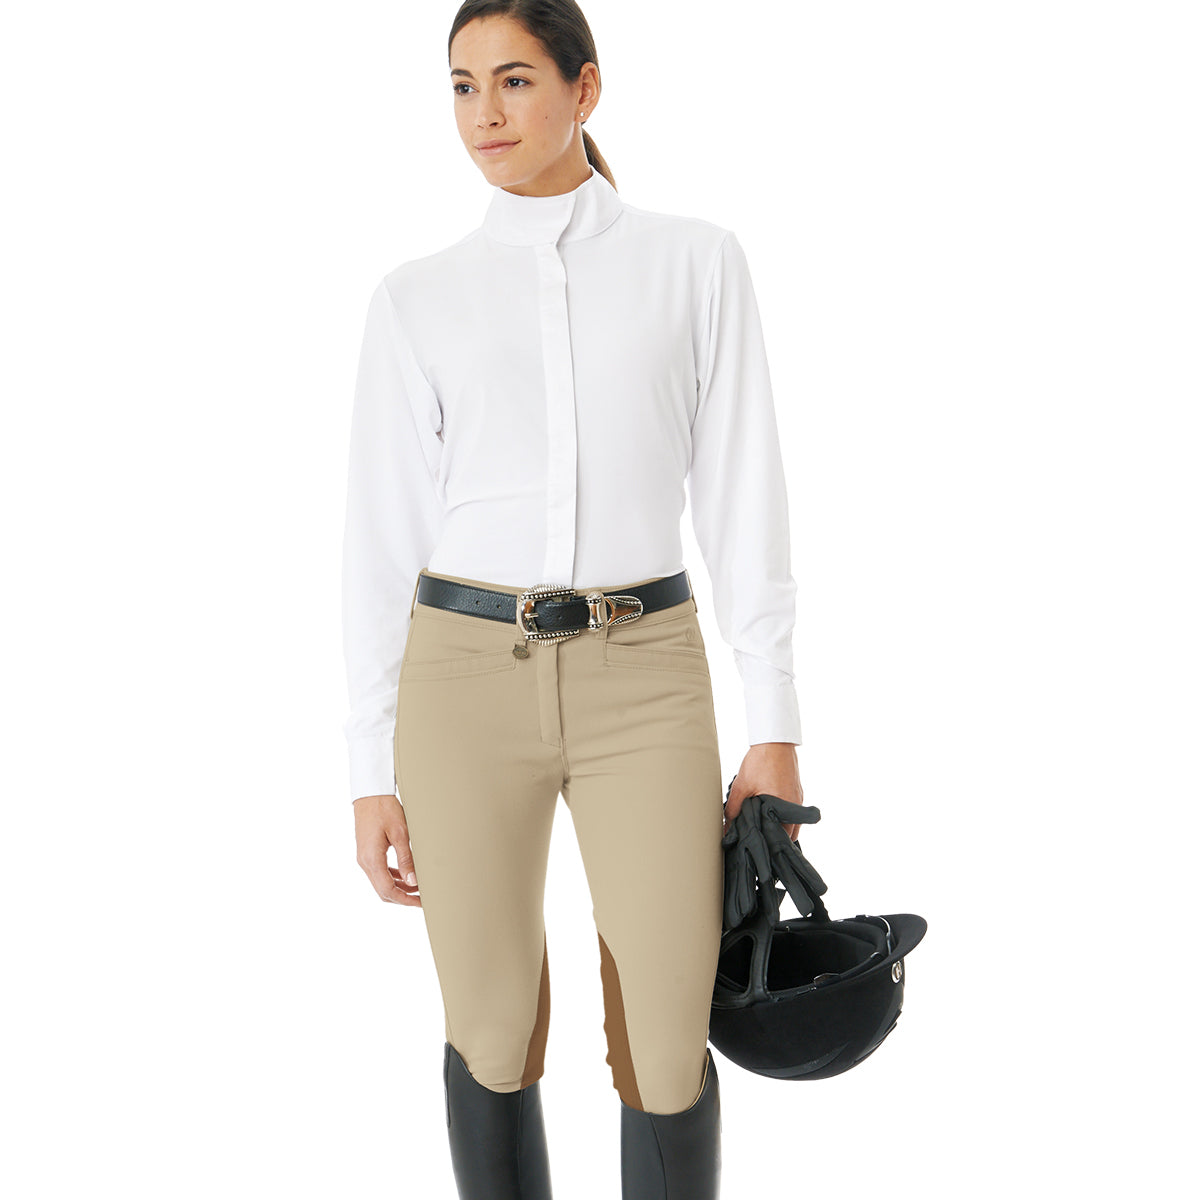 Ovation Women's Celebrity Slim Secret EuroWeave DX Euro Seat Front Zip Knee Patch Breeches